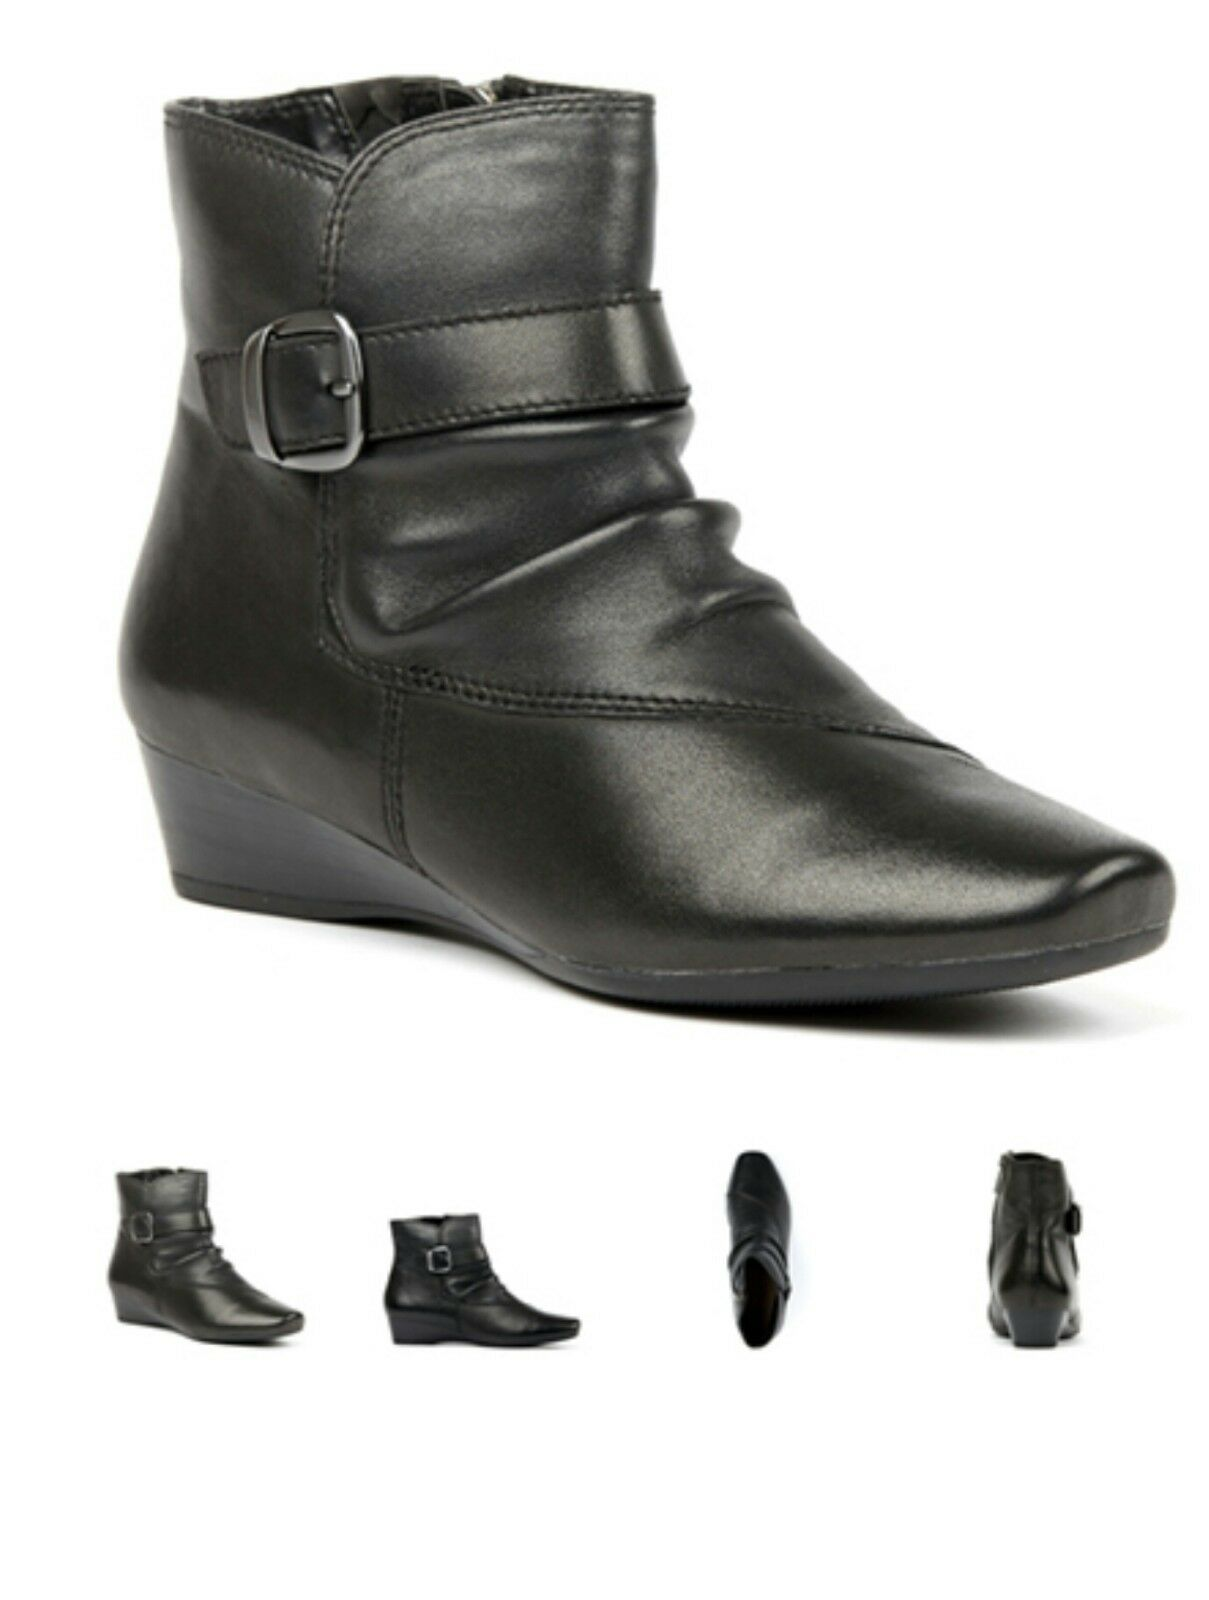 BRAND NEW WOMENS  SUPERSOFT BY DIANA FERRARI COMFORT ANKLE BOOTS SZ 9.5  ruyben